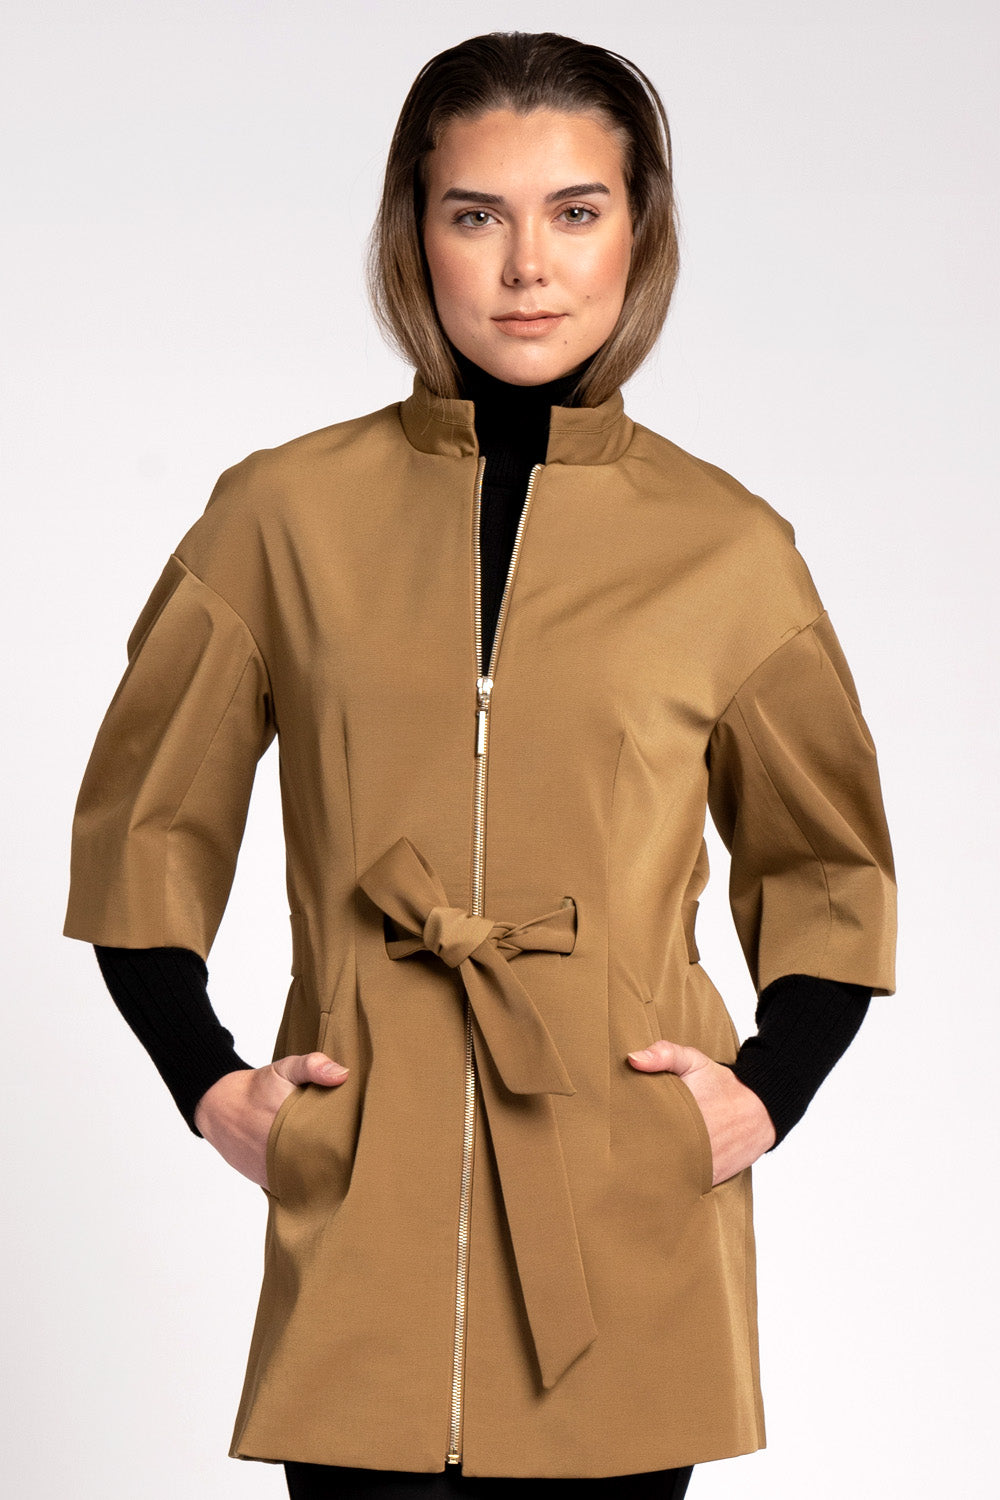 Bella Khardel Jacket